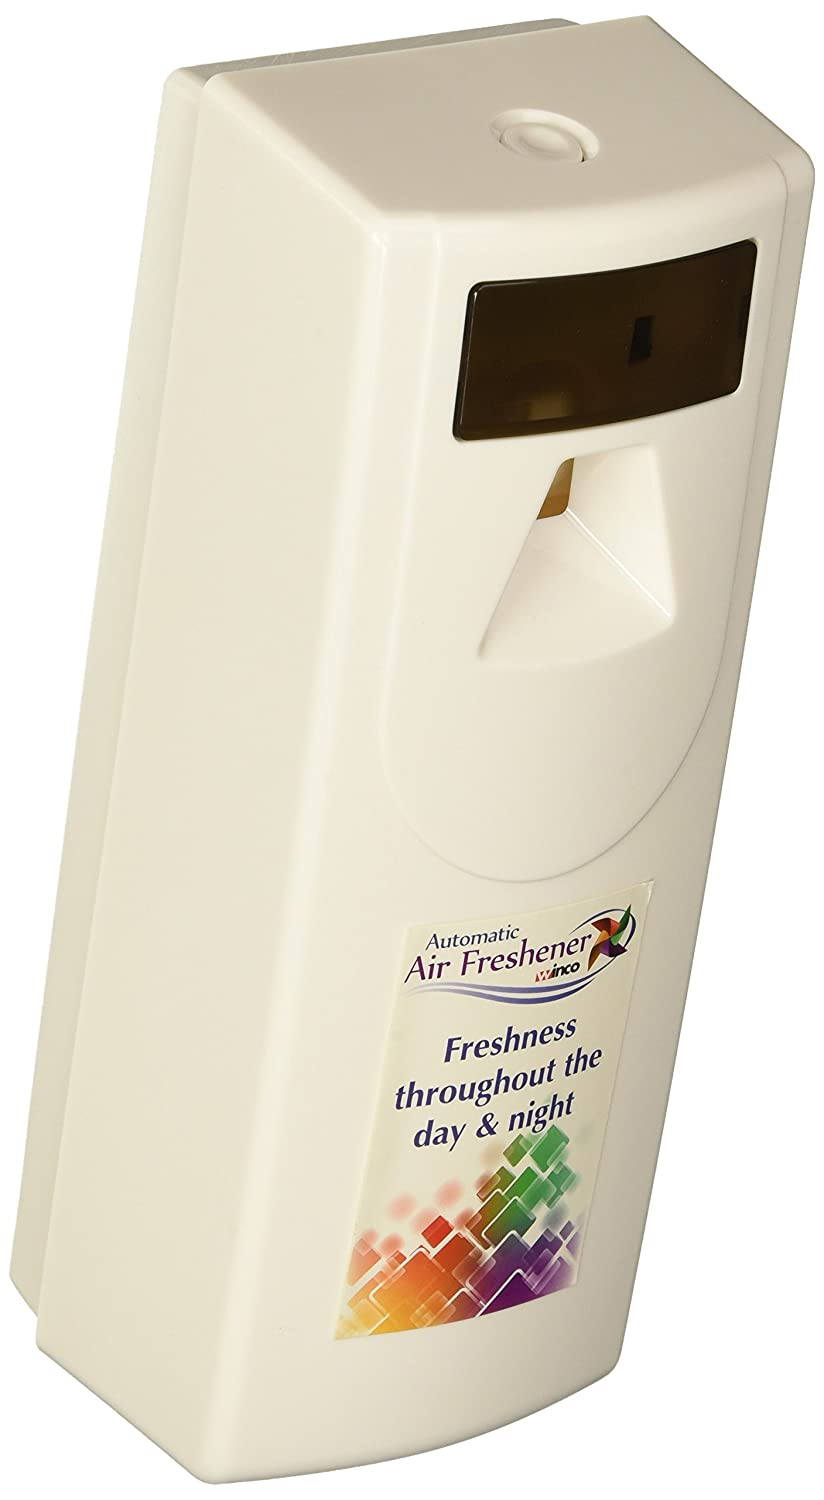 Amazon.com: Winco AFD-1 Automatic Air Freshener: Kitchen & Dining